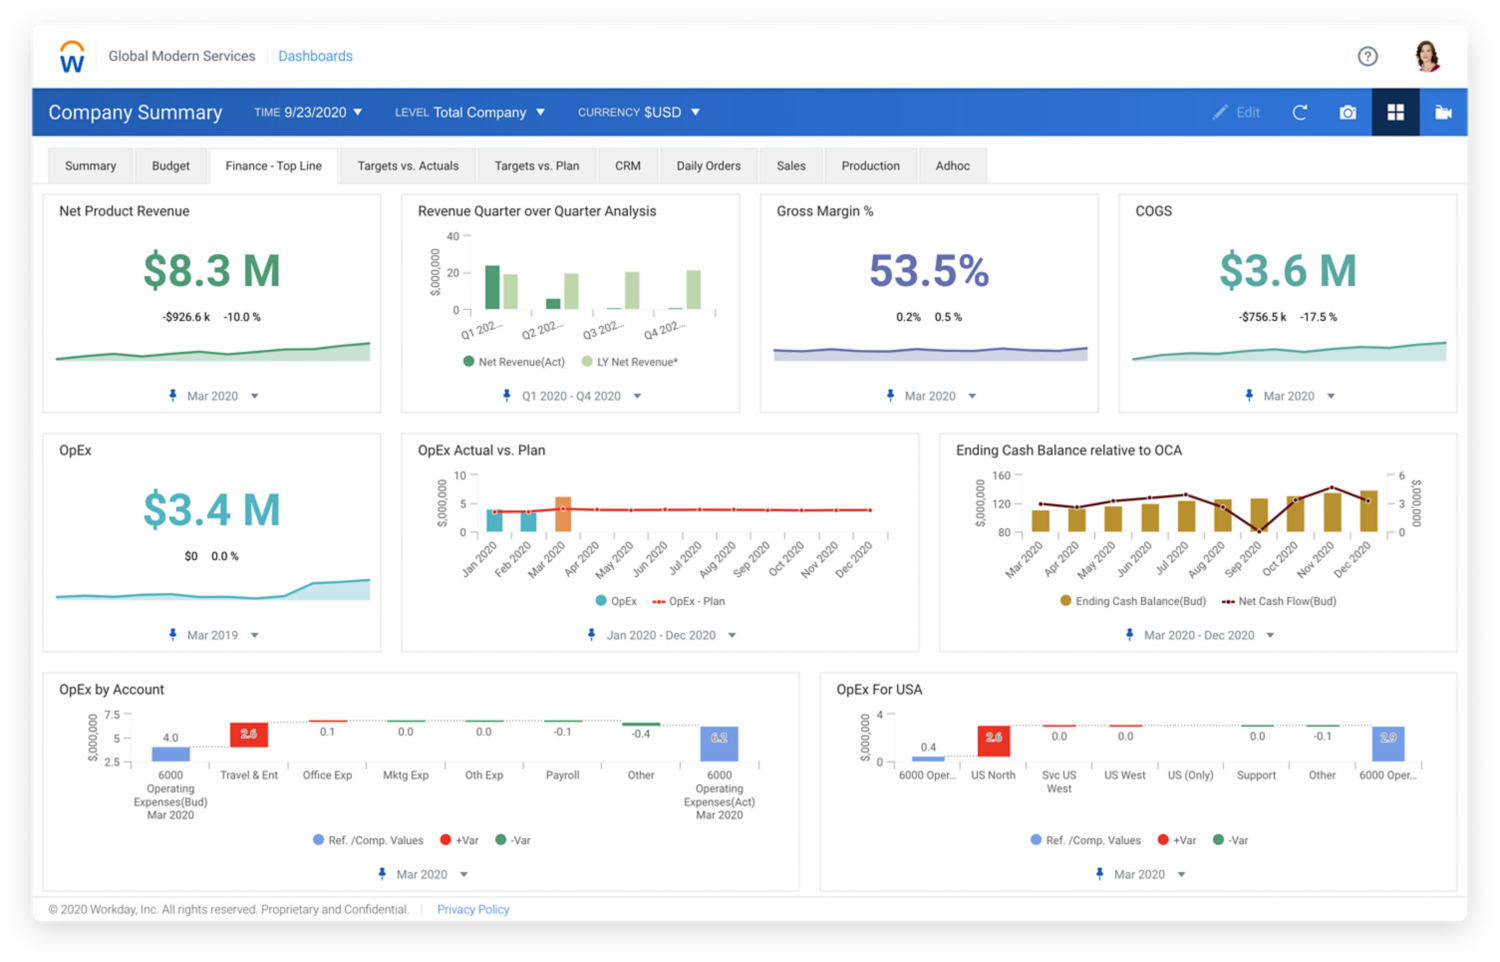 Workday Adaptive Planning's financial analytics dashboard showing bar graphs and numerical values for Top Line finance including Net Product Revenue, Gross Margin percent